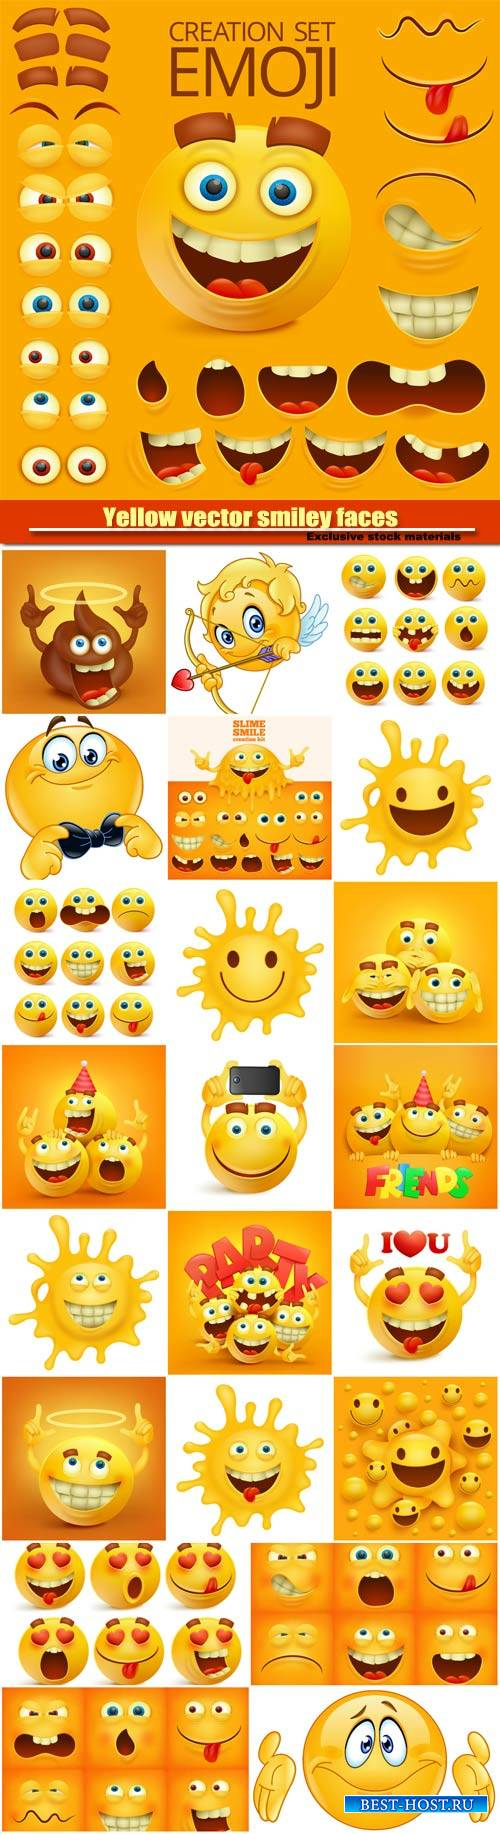 Yellow vector smiley faces